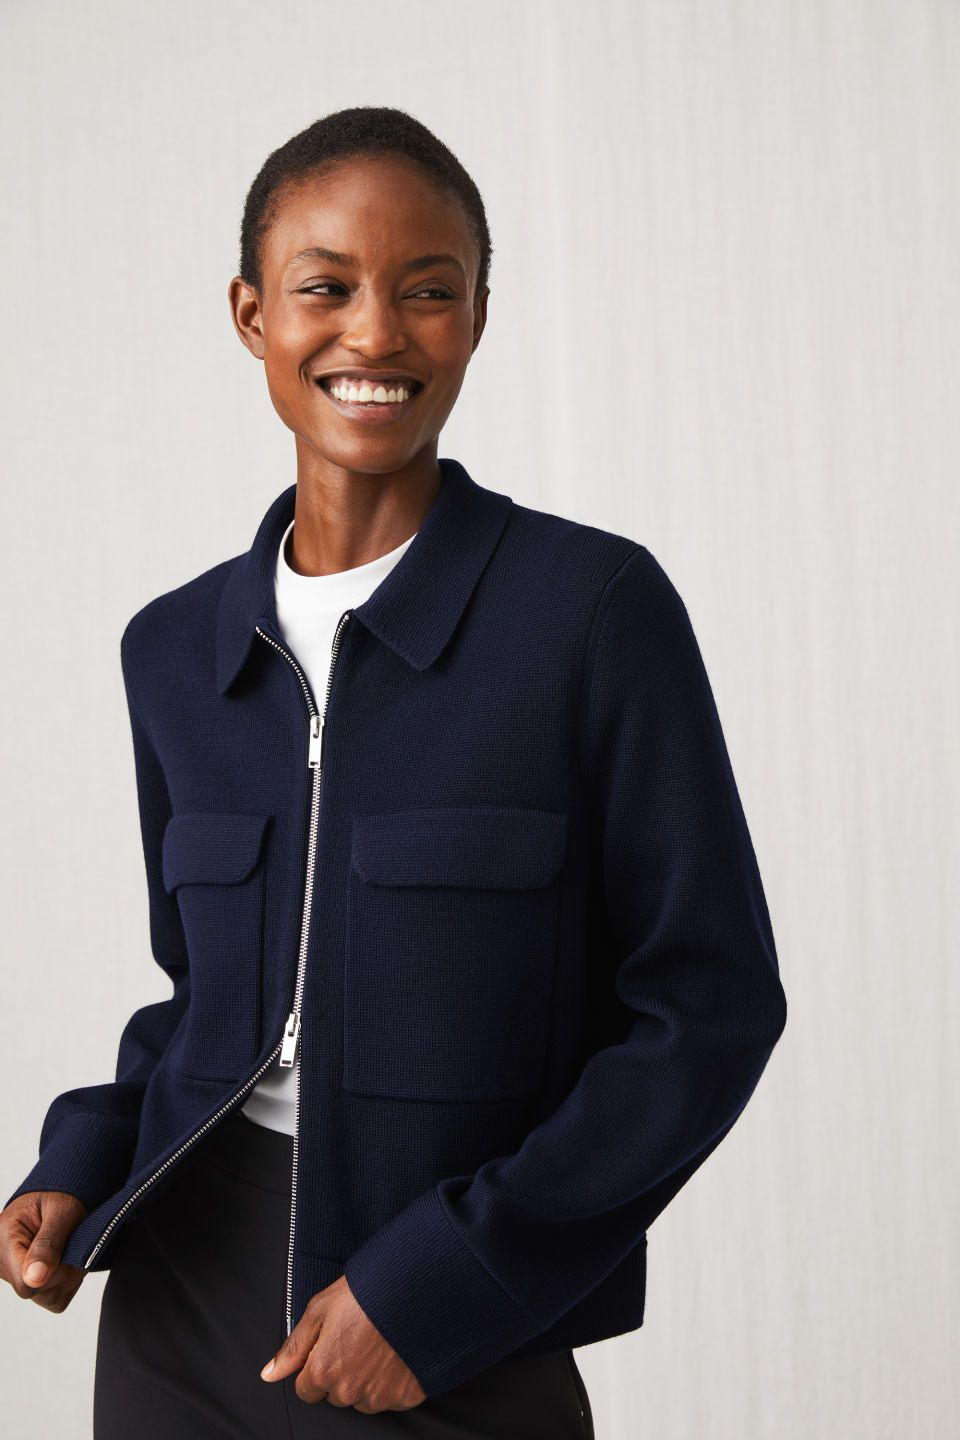 A Knitted Outerwear Garment With A Short And Boxy Shape Flat Collar Two Large Patch Pockets On The Chest And A Two Way Knitwear Women Knitwear Knit Structure